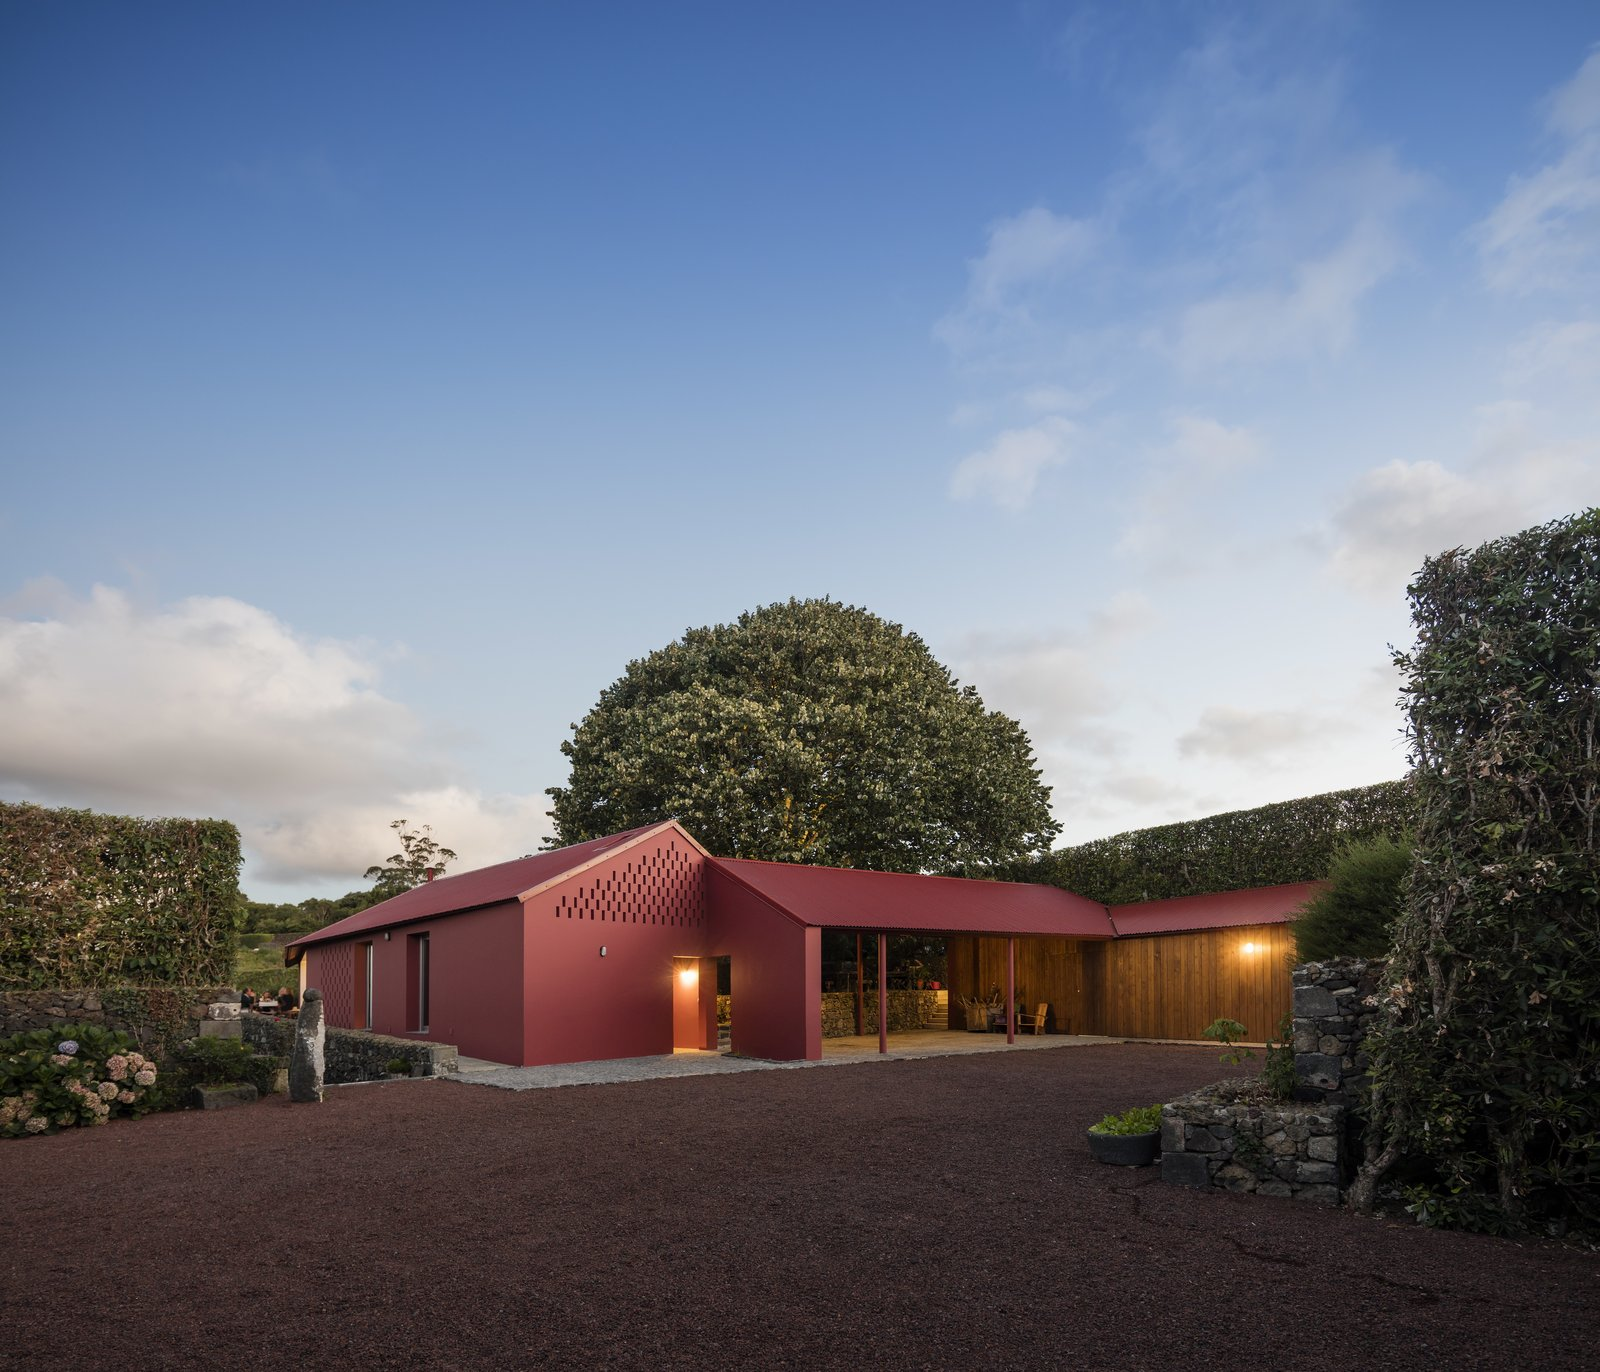 Exterior, House Building Type, Shed RoofLine, Gable RoofLine, and Metal Roof Material  Photo 3 of 14 in A Bright Red Island Residence Embraces a Linden Tree